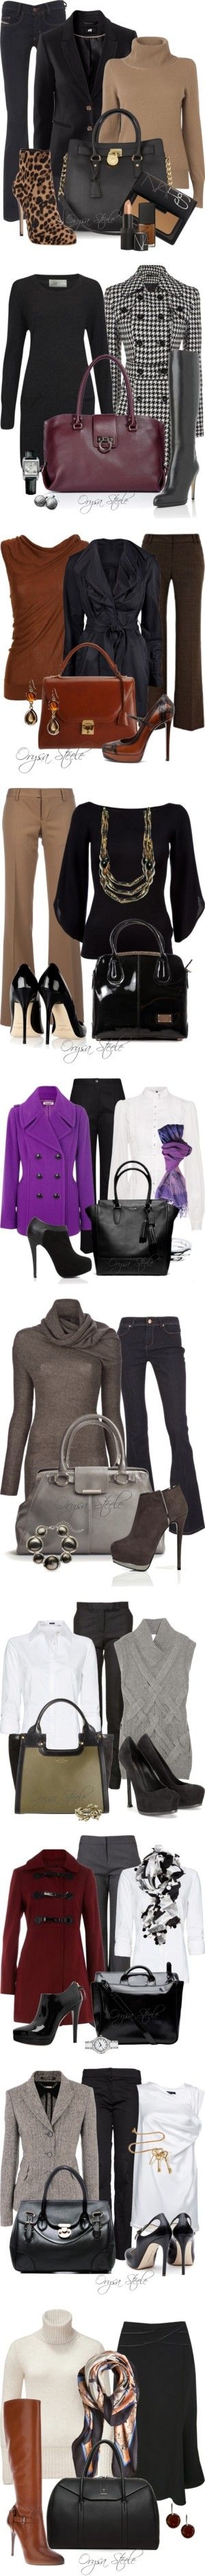 """Dressed Up for Fall"" by orysa on Polyvore:"